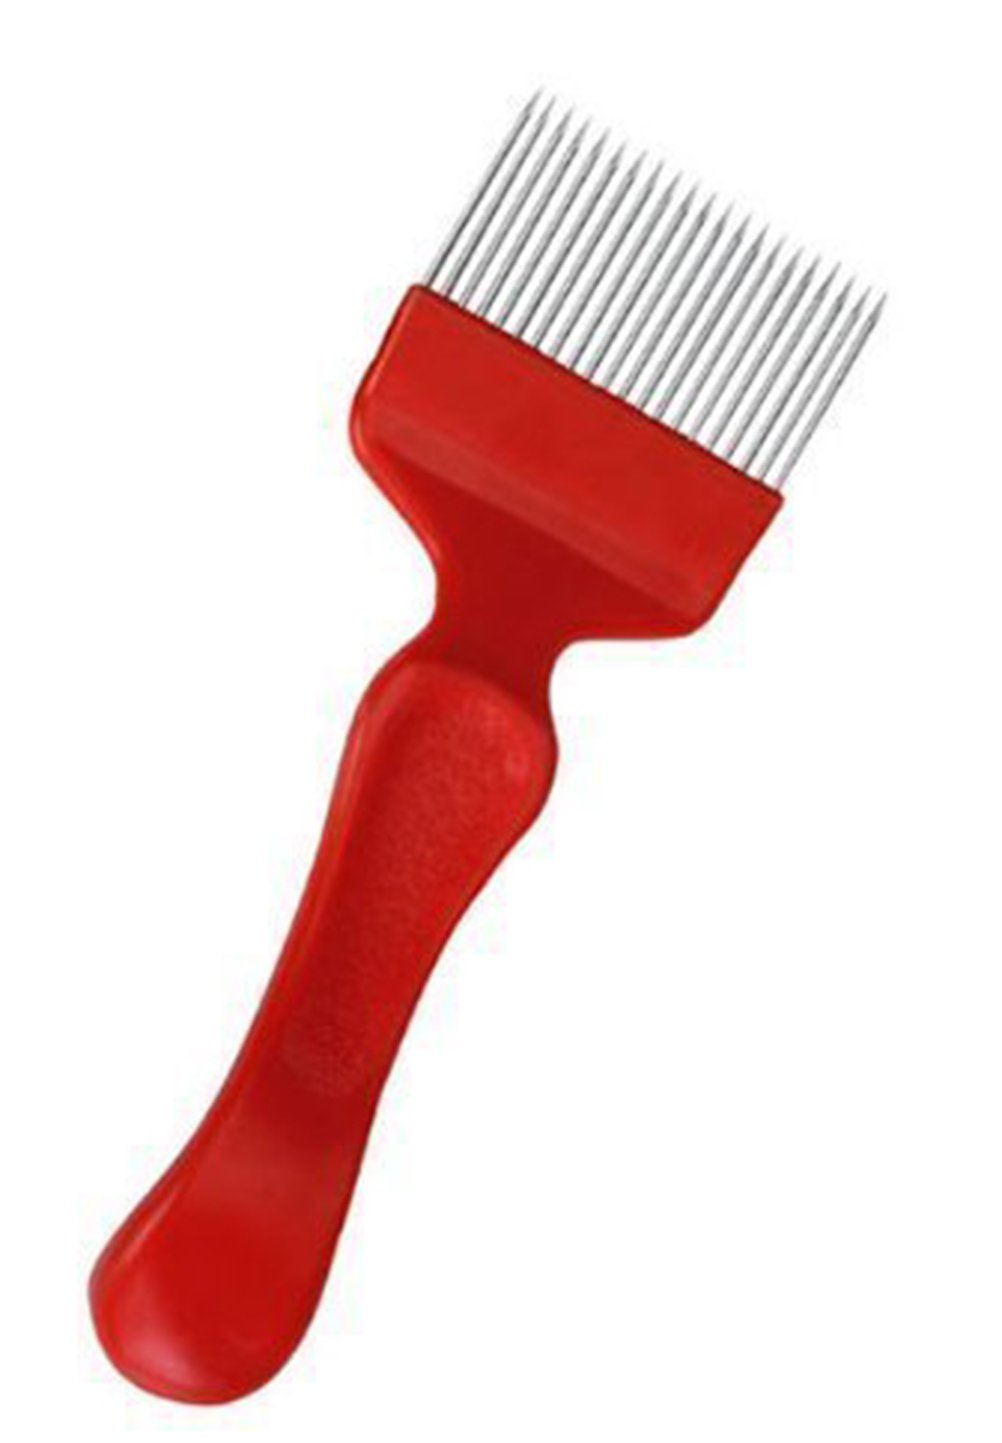 Demarkt Bee Keeping Stainless Steel Uncapping Fork Tool Red or(Yellow )